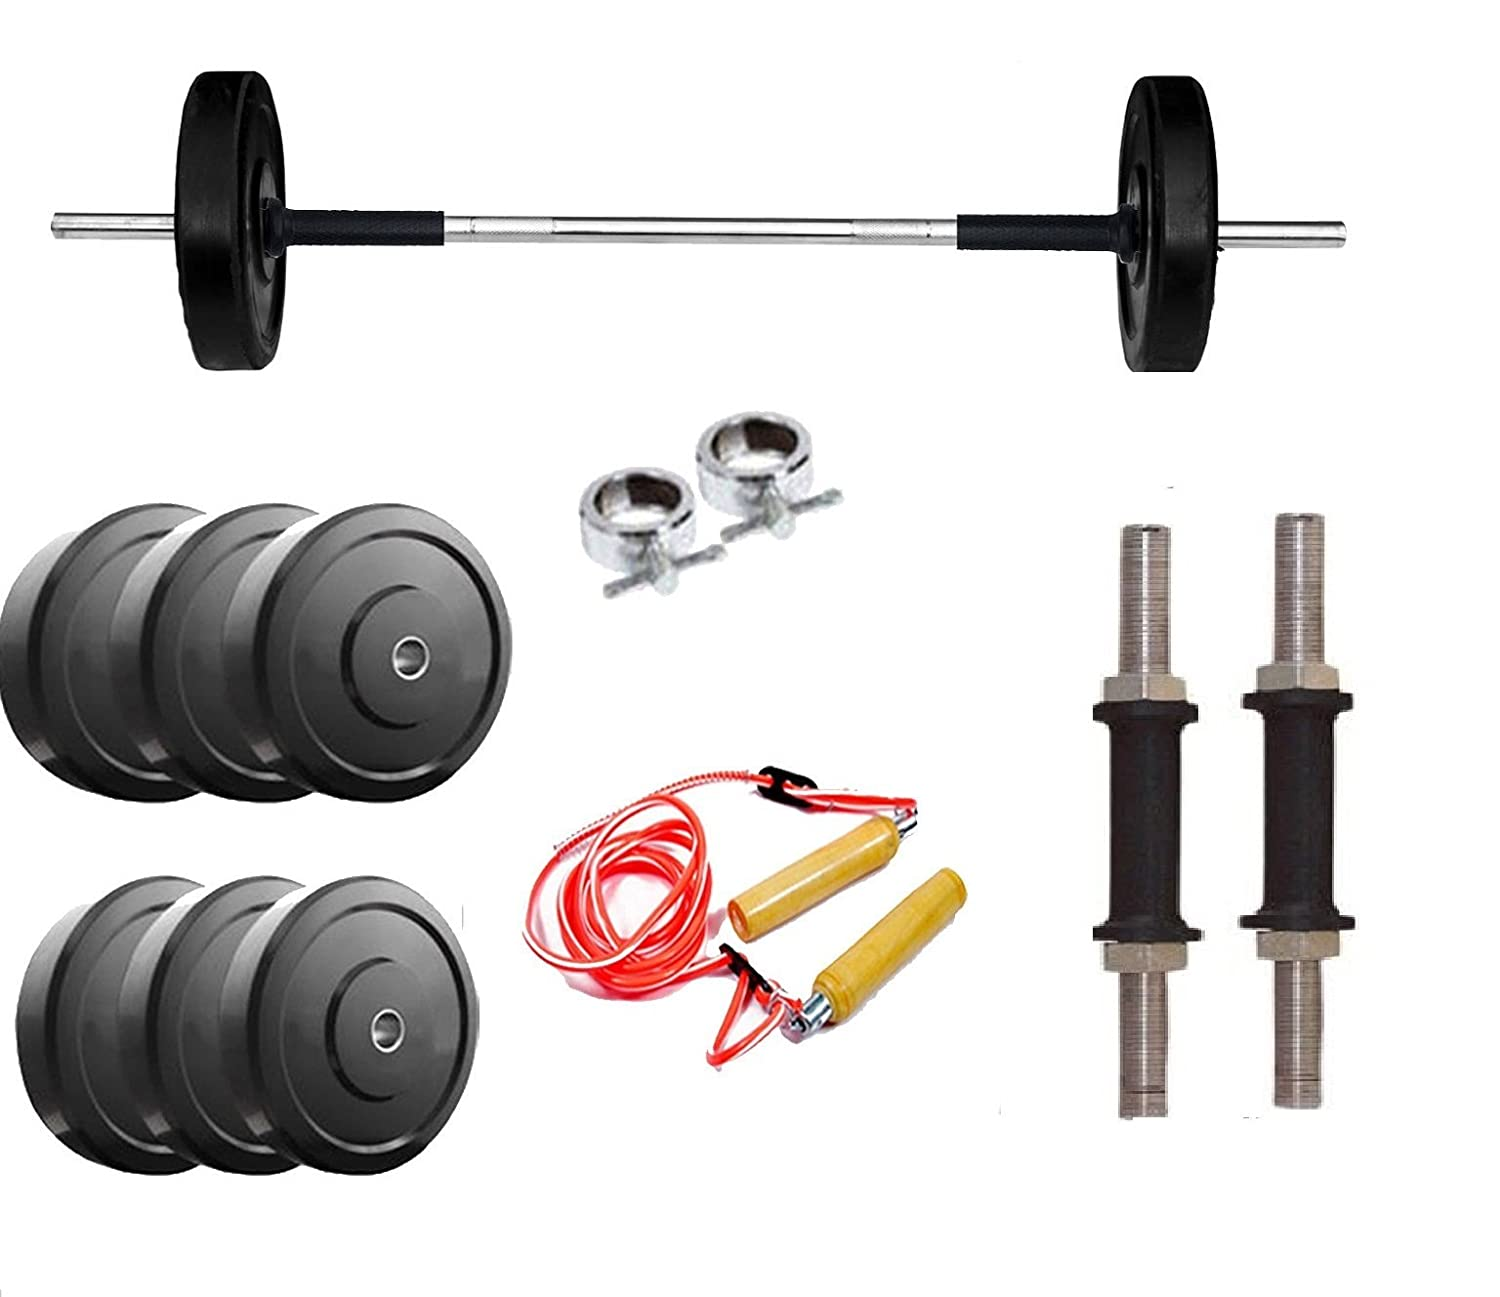 Buy gymnase kg home gym set with ft plain rod gym accessories